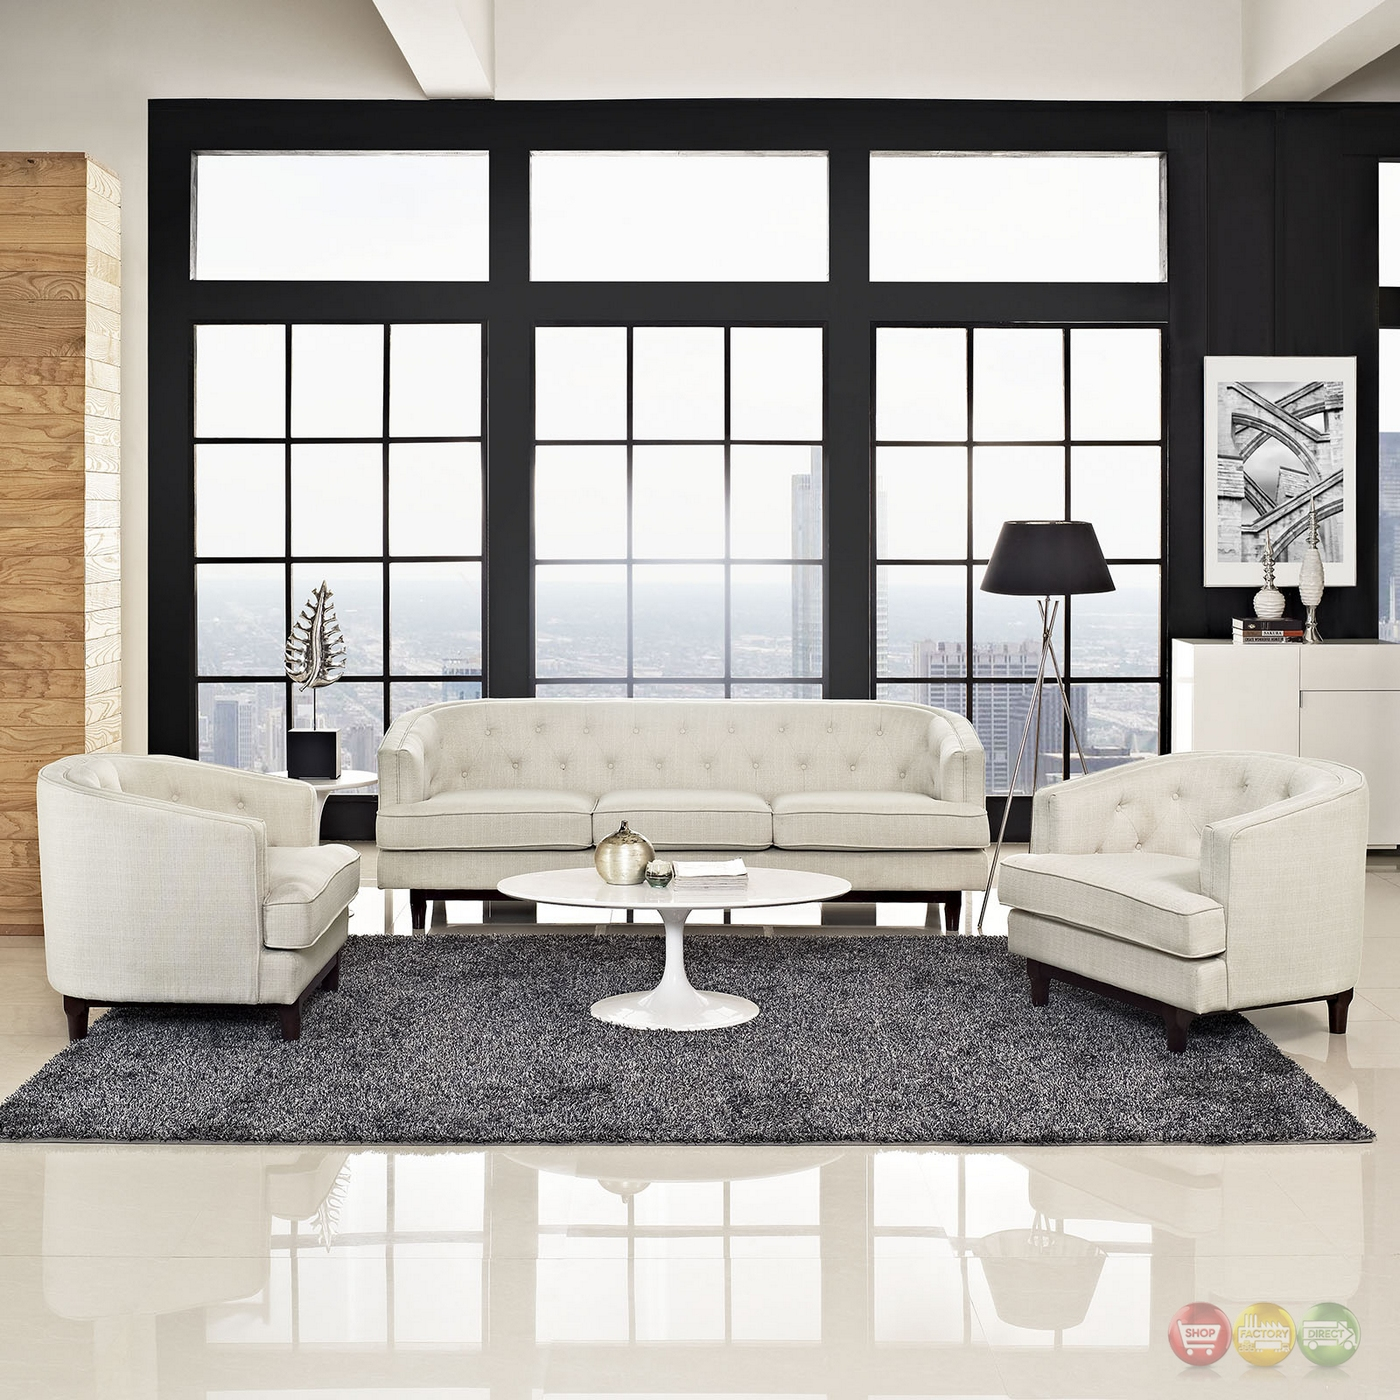 Coast modern 3 pc upholstered sofa armchairs living room for Modern armchairs for living room